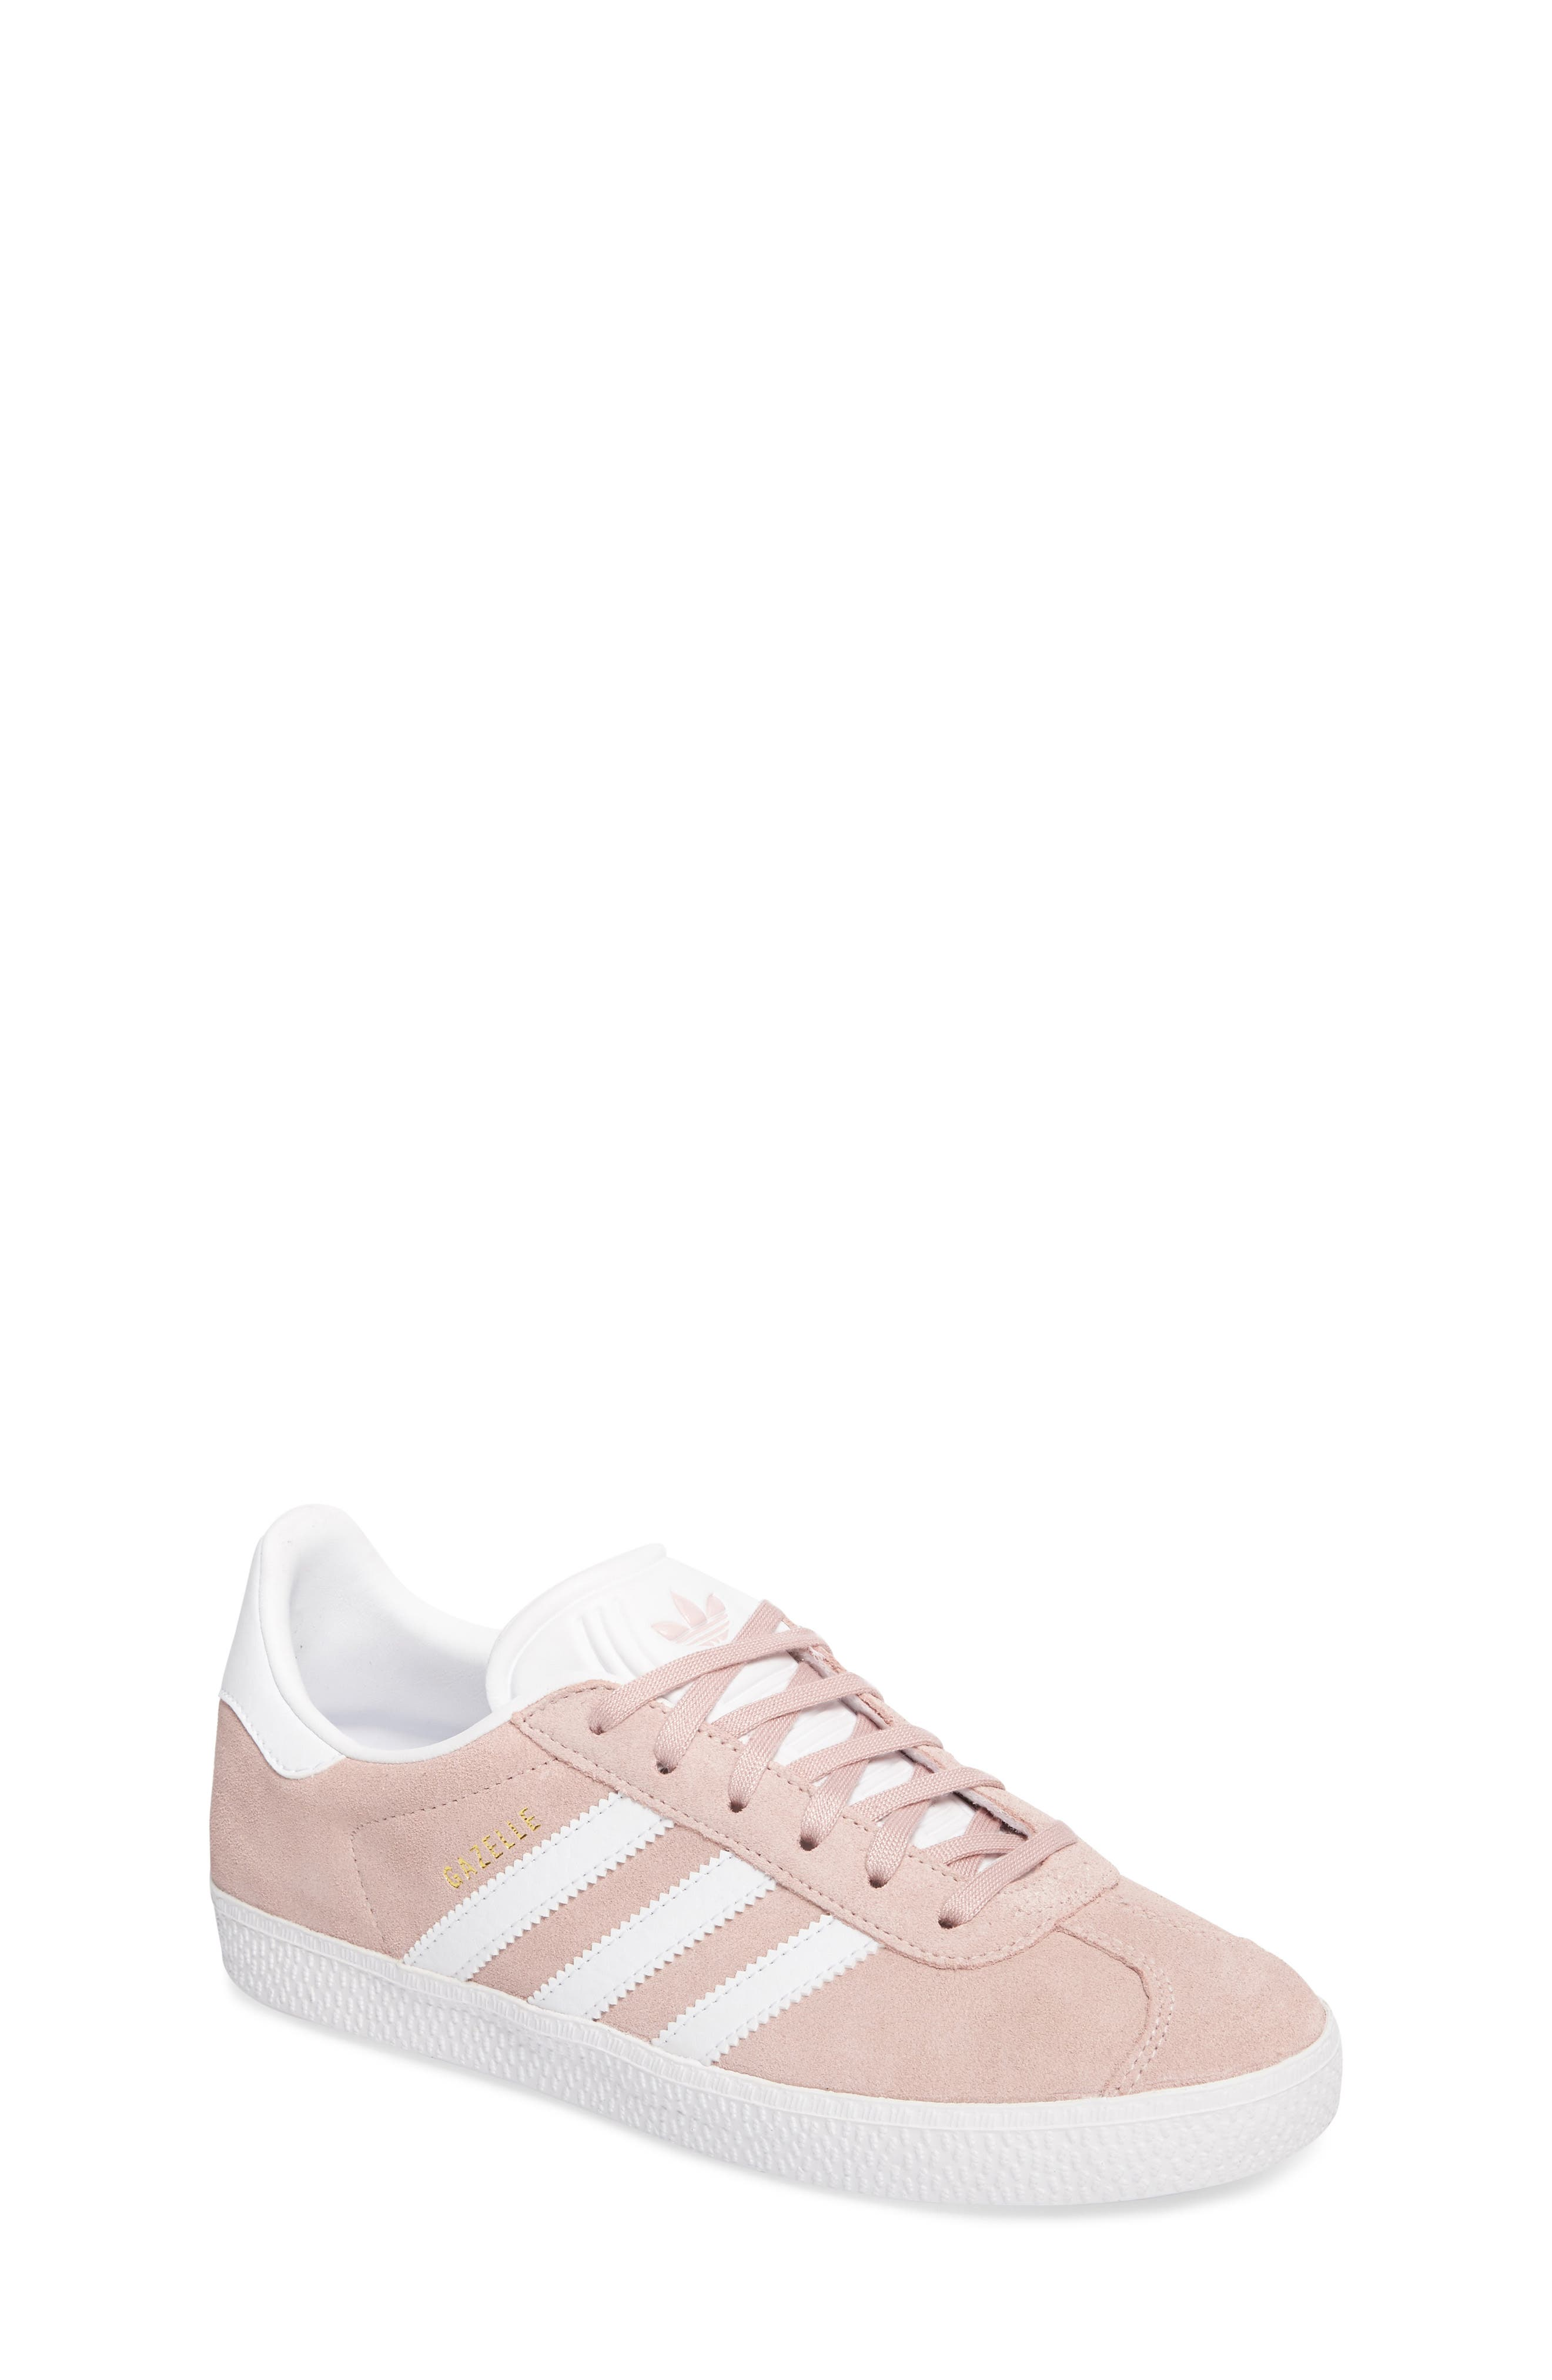 Gazelle Sneaker,                             Main thumbnail 1, color,                             Icy Pink/ White/ Gold